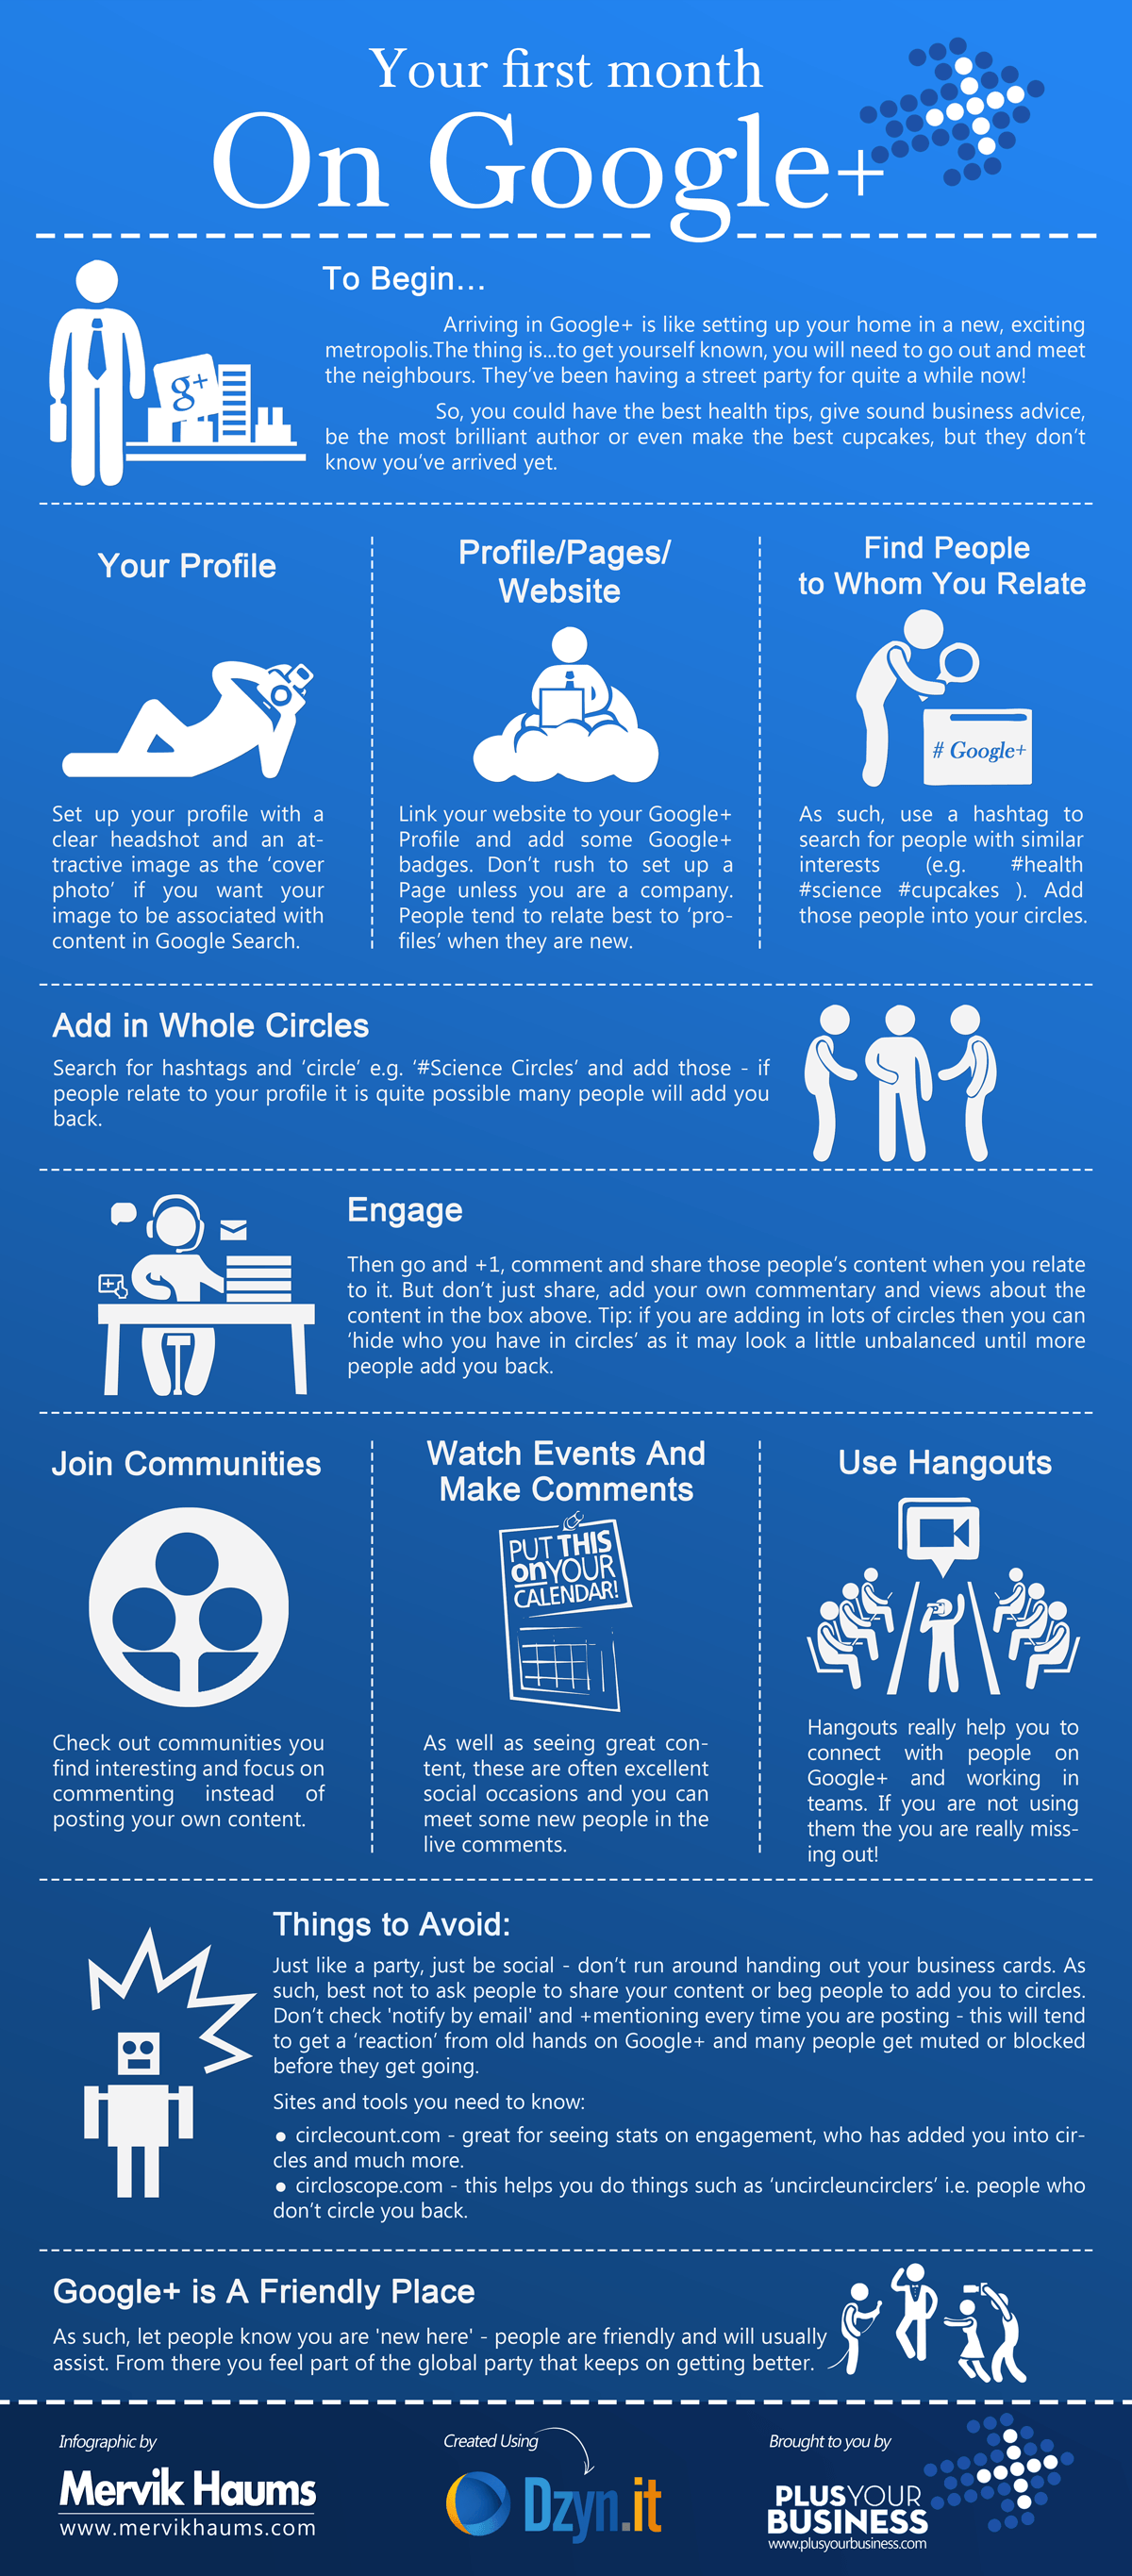 Guide to Google+